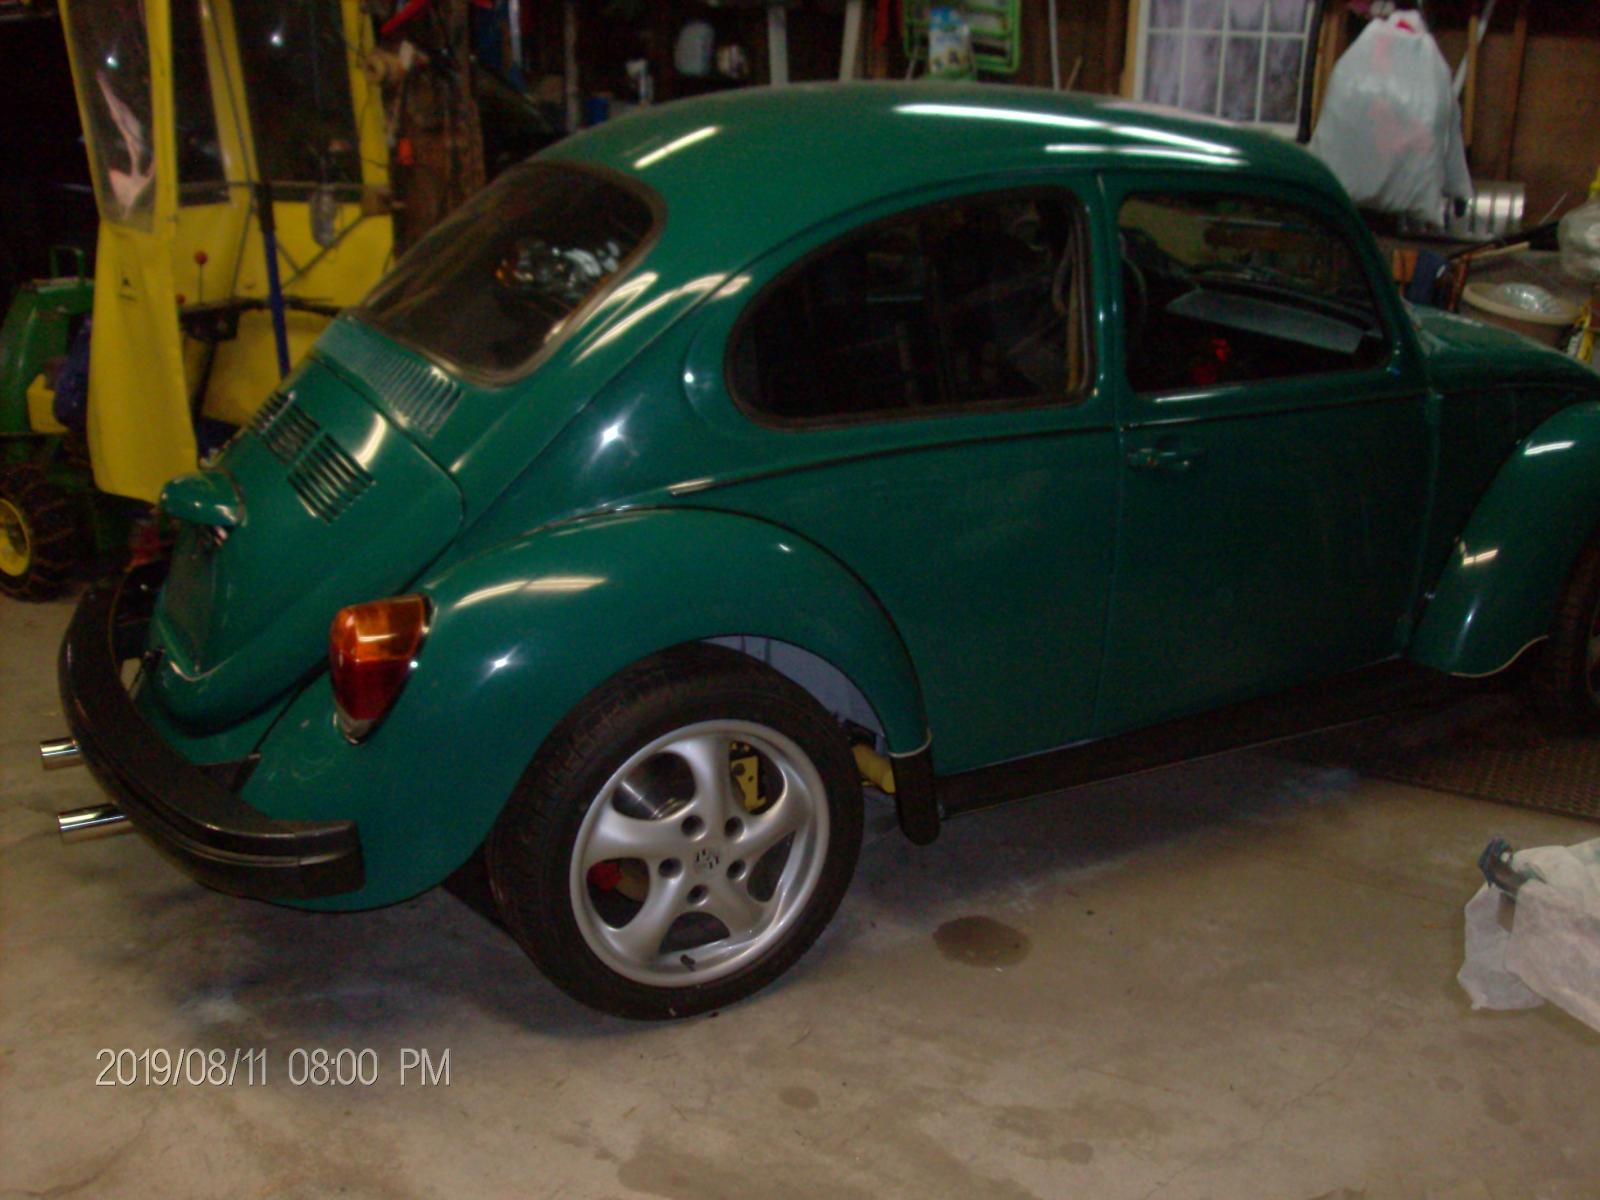 74 Super Beetle